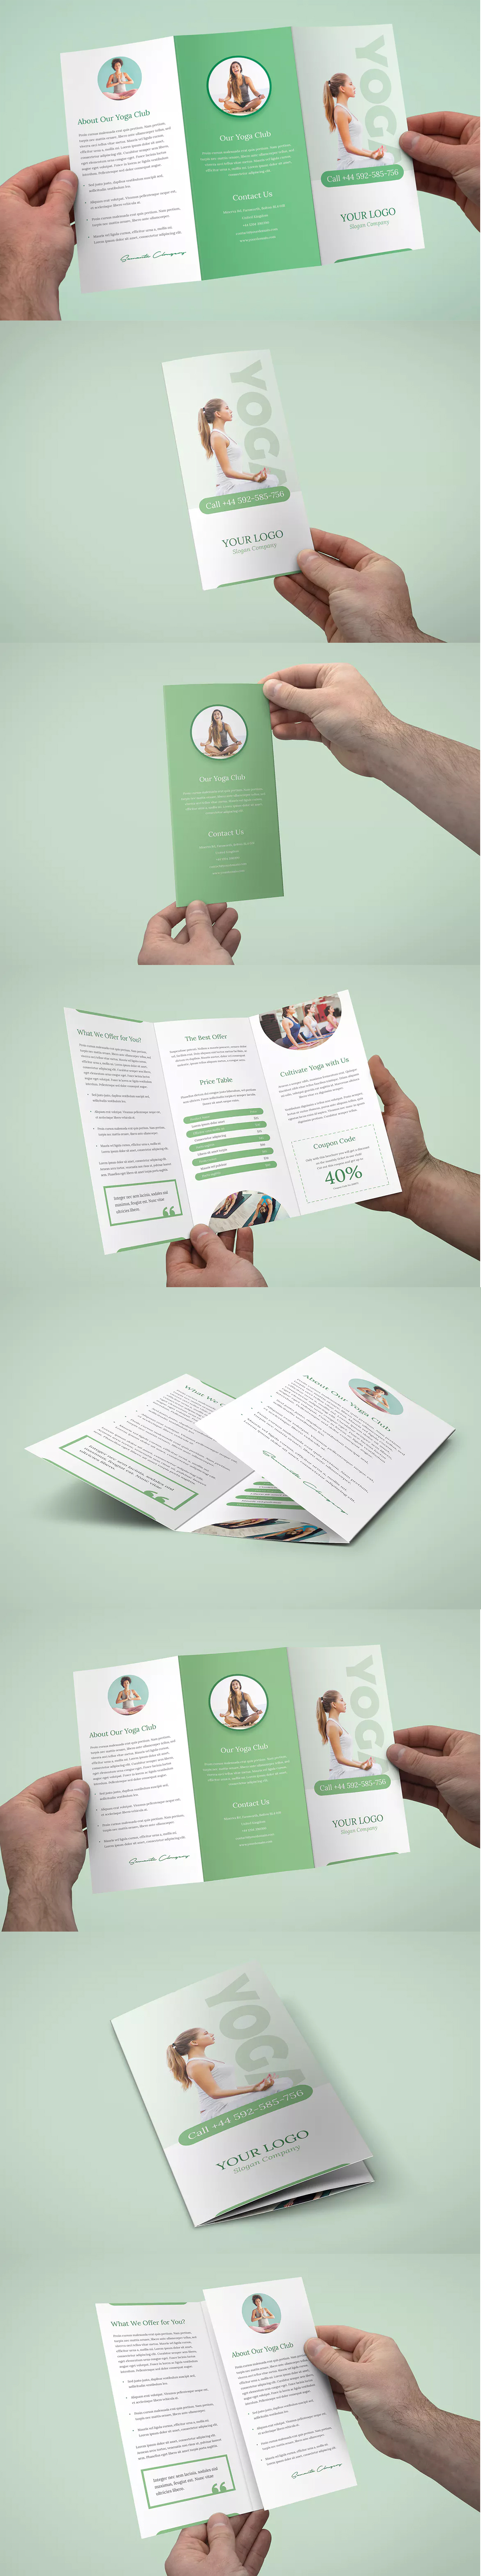 Yoga TriFold Brochure Template PSD A And US Letter Size - A4 tri fold brochure template